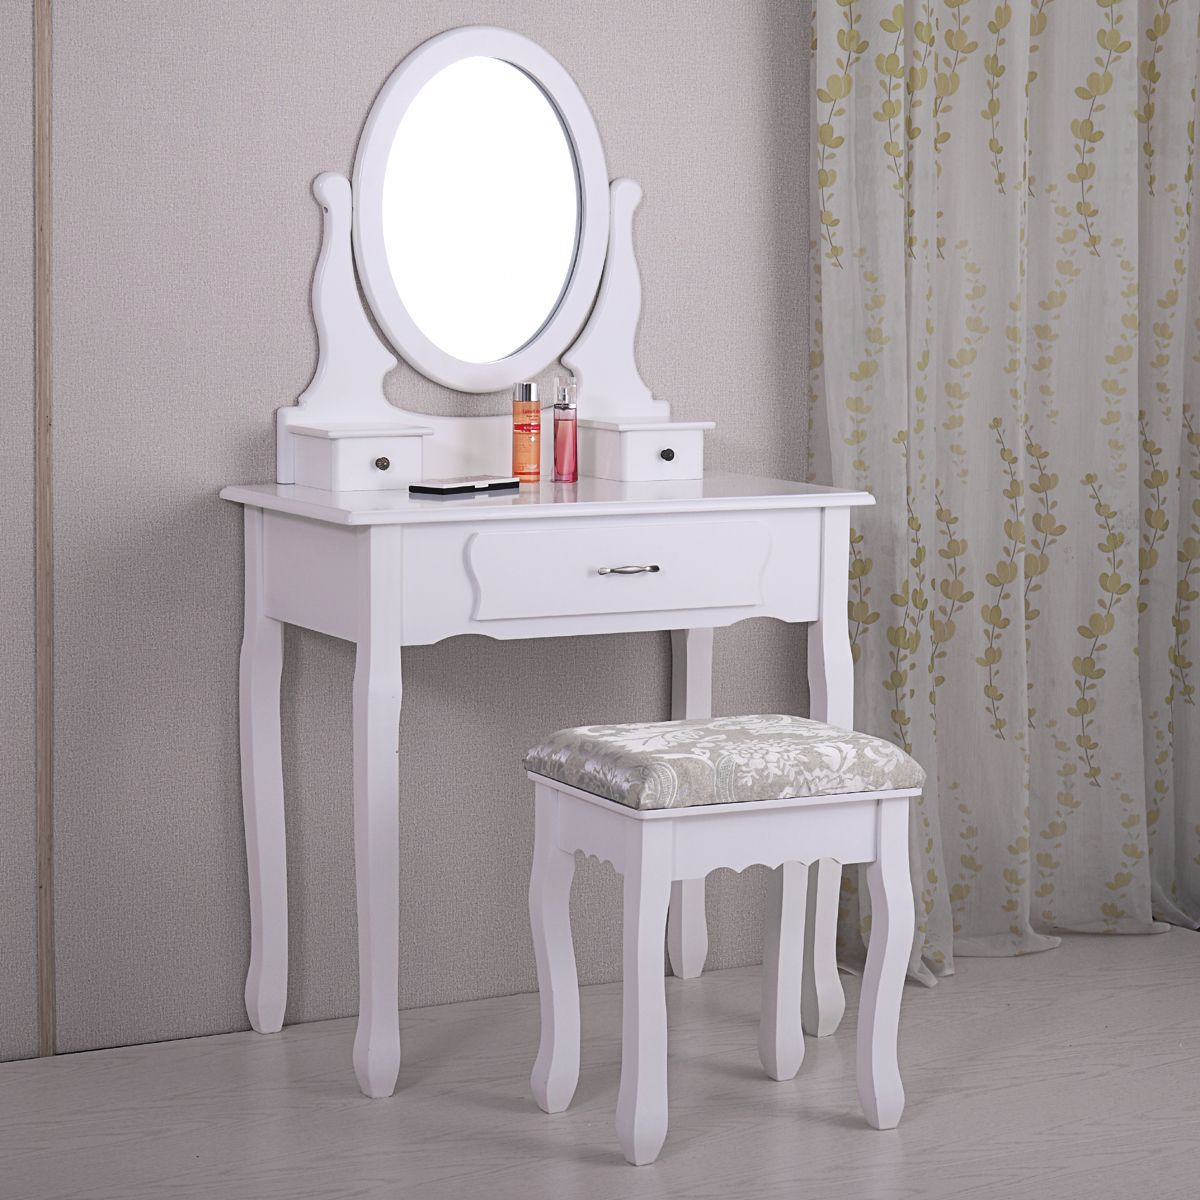 Jaxpety White Wood Makeup Dressing Table Stool Set Antique Collection Vanity Table With 3 Drawers Antiq In 2020 Dressing Table With Stool Vanity Table Set Vanity Table